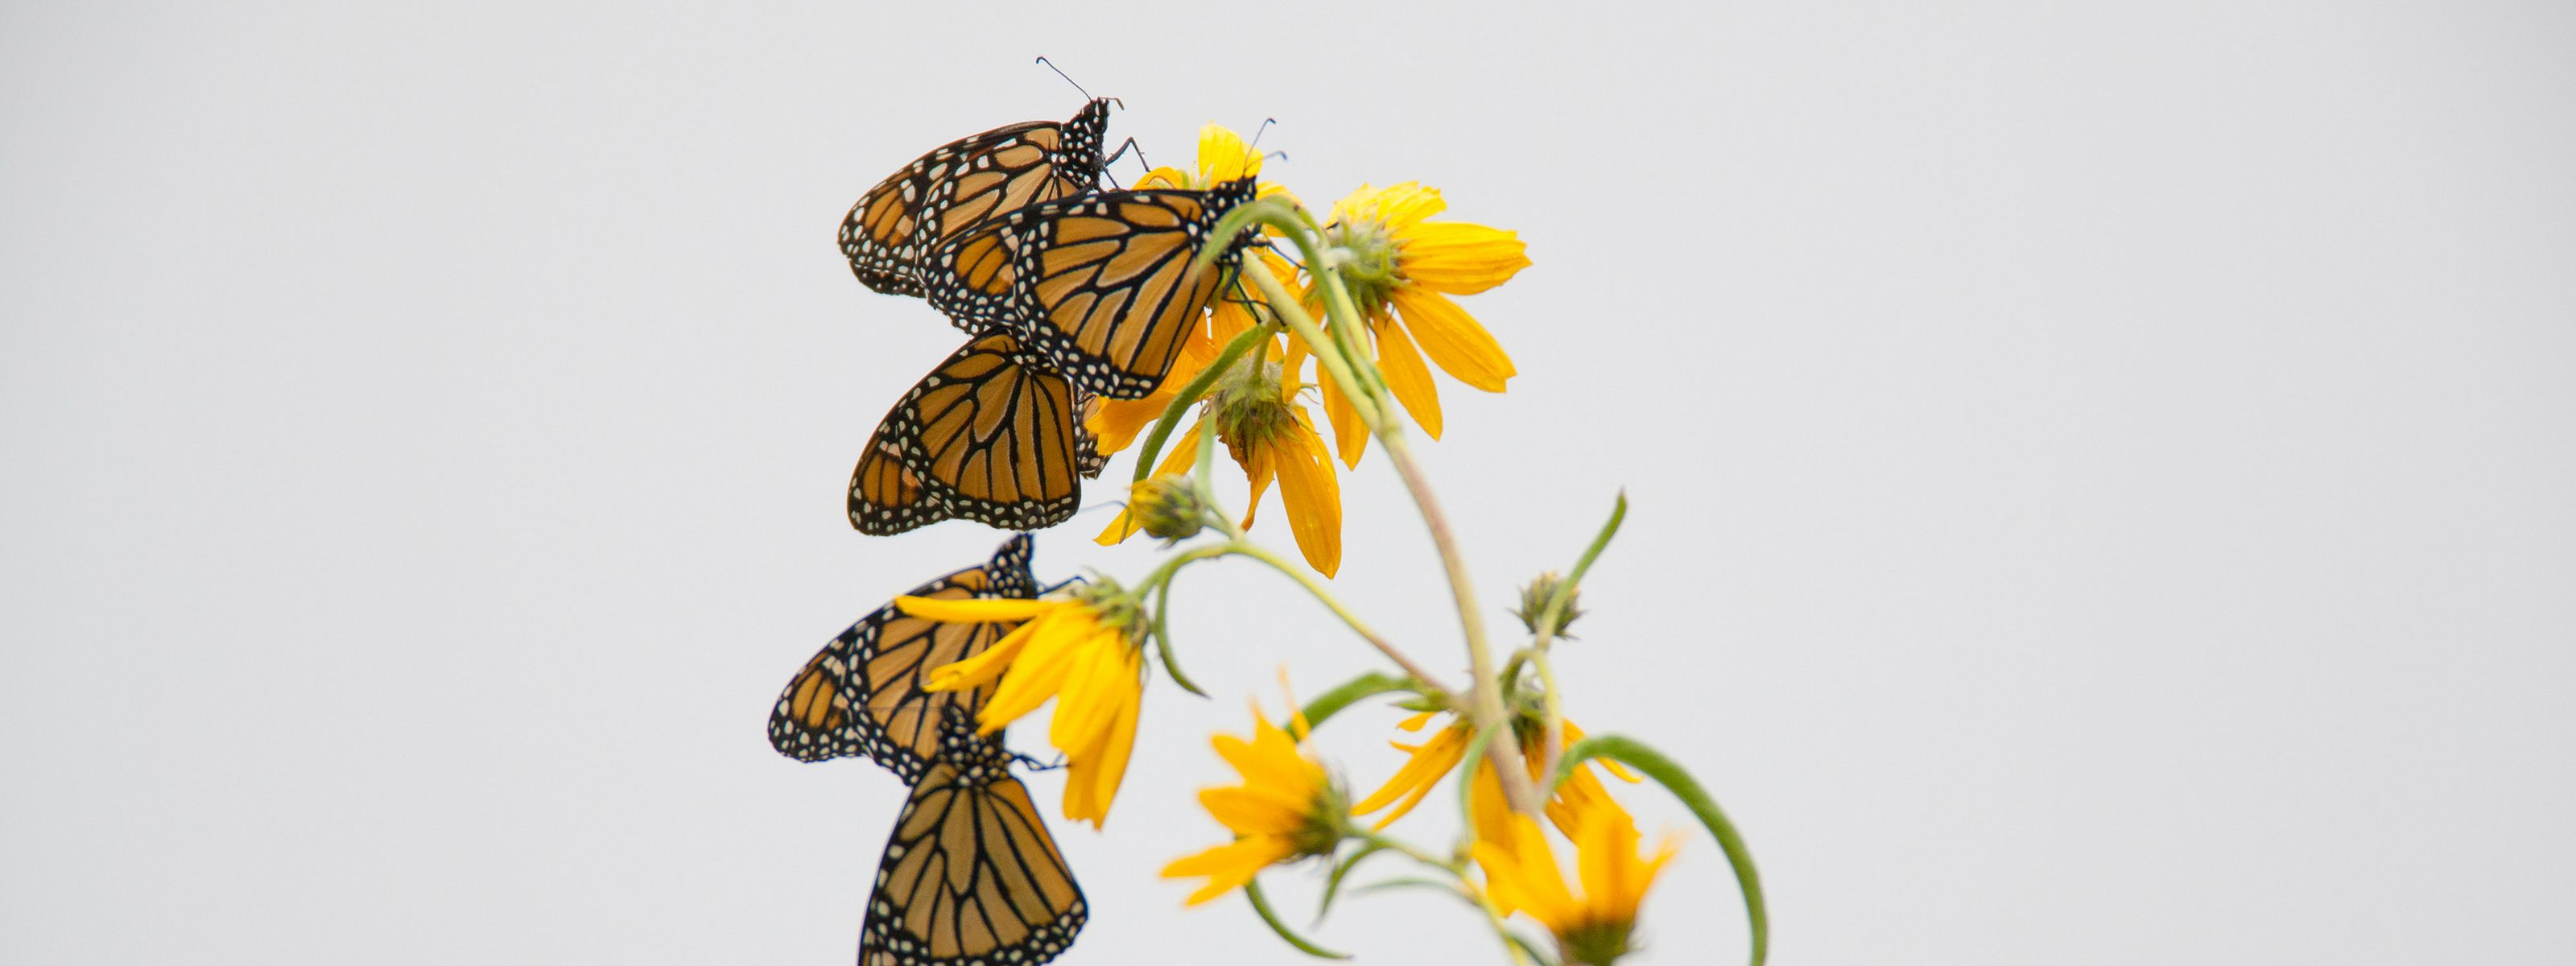 Three monarch butterflies hanging on a yellow wildflower.